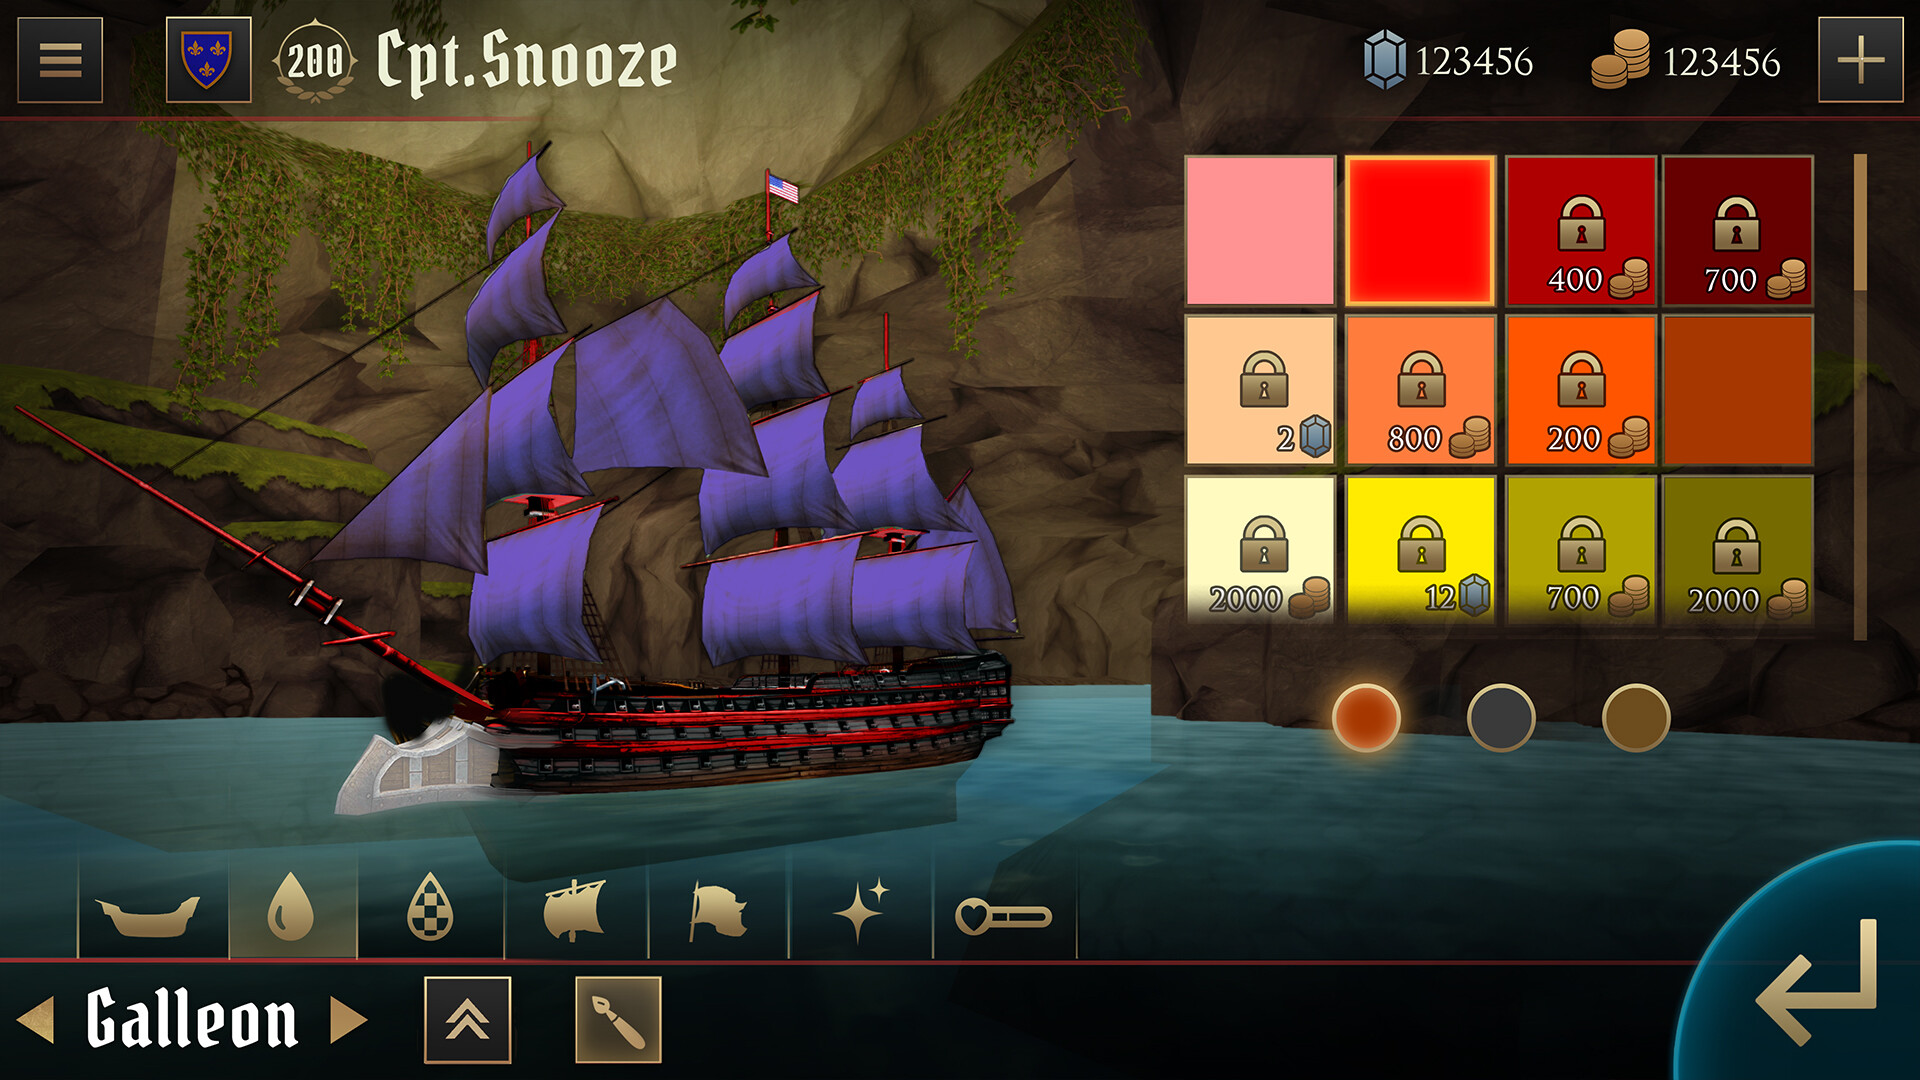 Ship customization UI, colors section. each ship (and its add-ons) would have three areas to assign a color to. Selecting the color slot and pressing a color allowed for a preview on the ship model. pressing it again would equip the color to that slot.